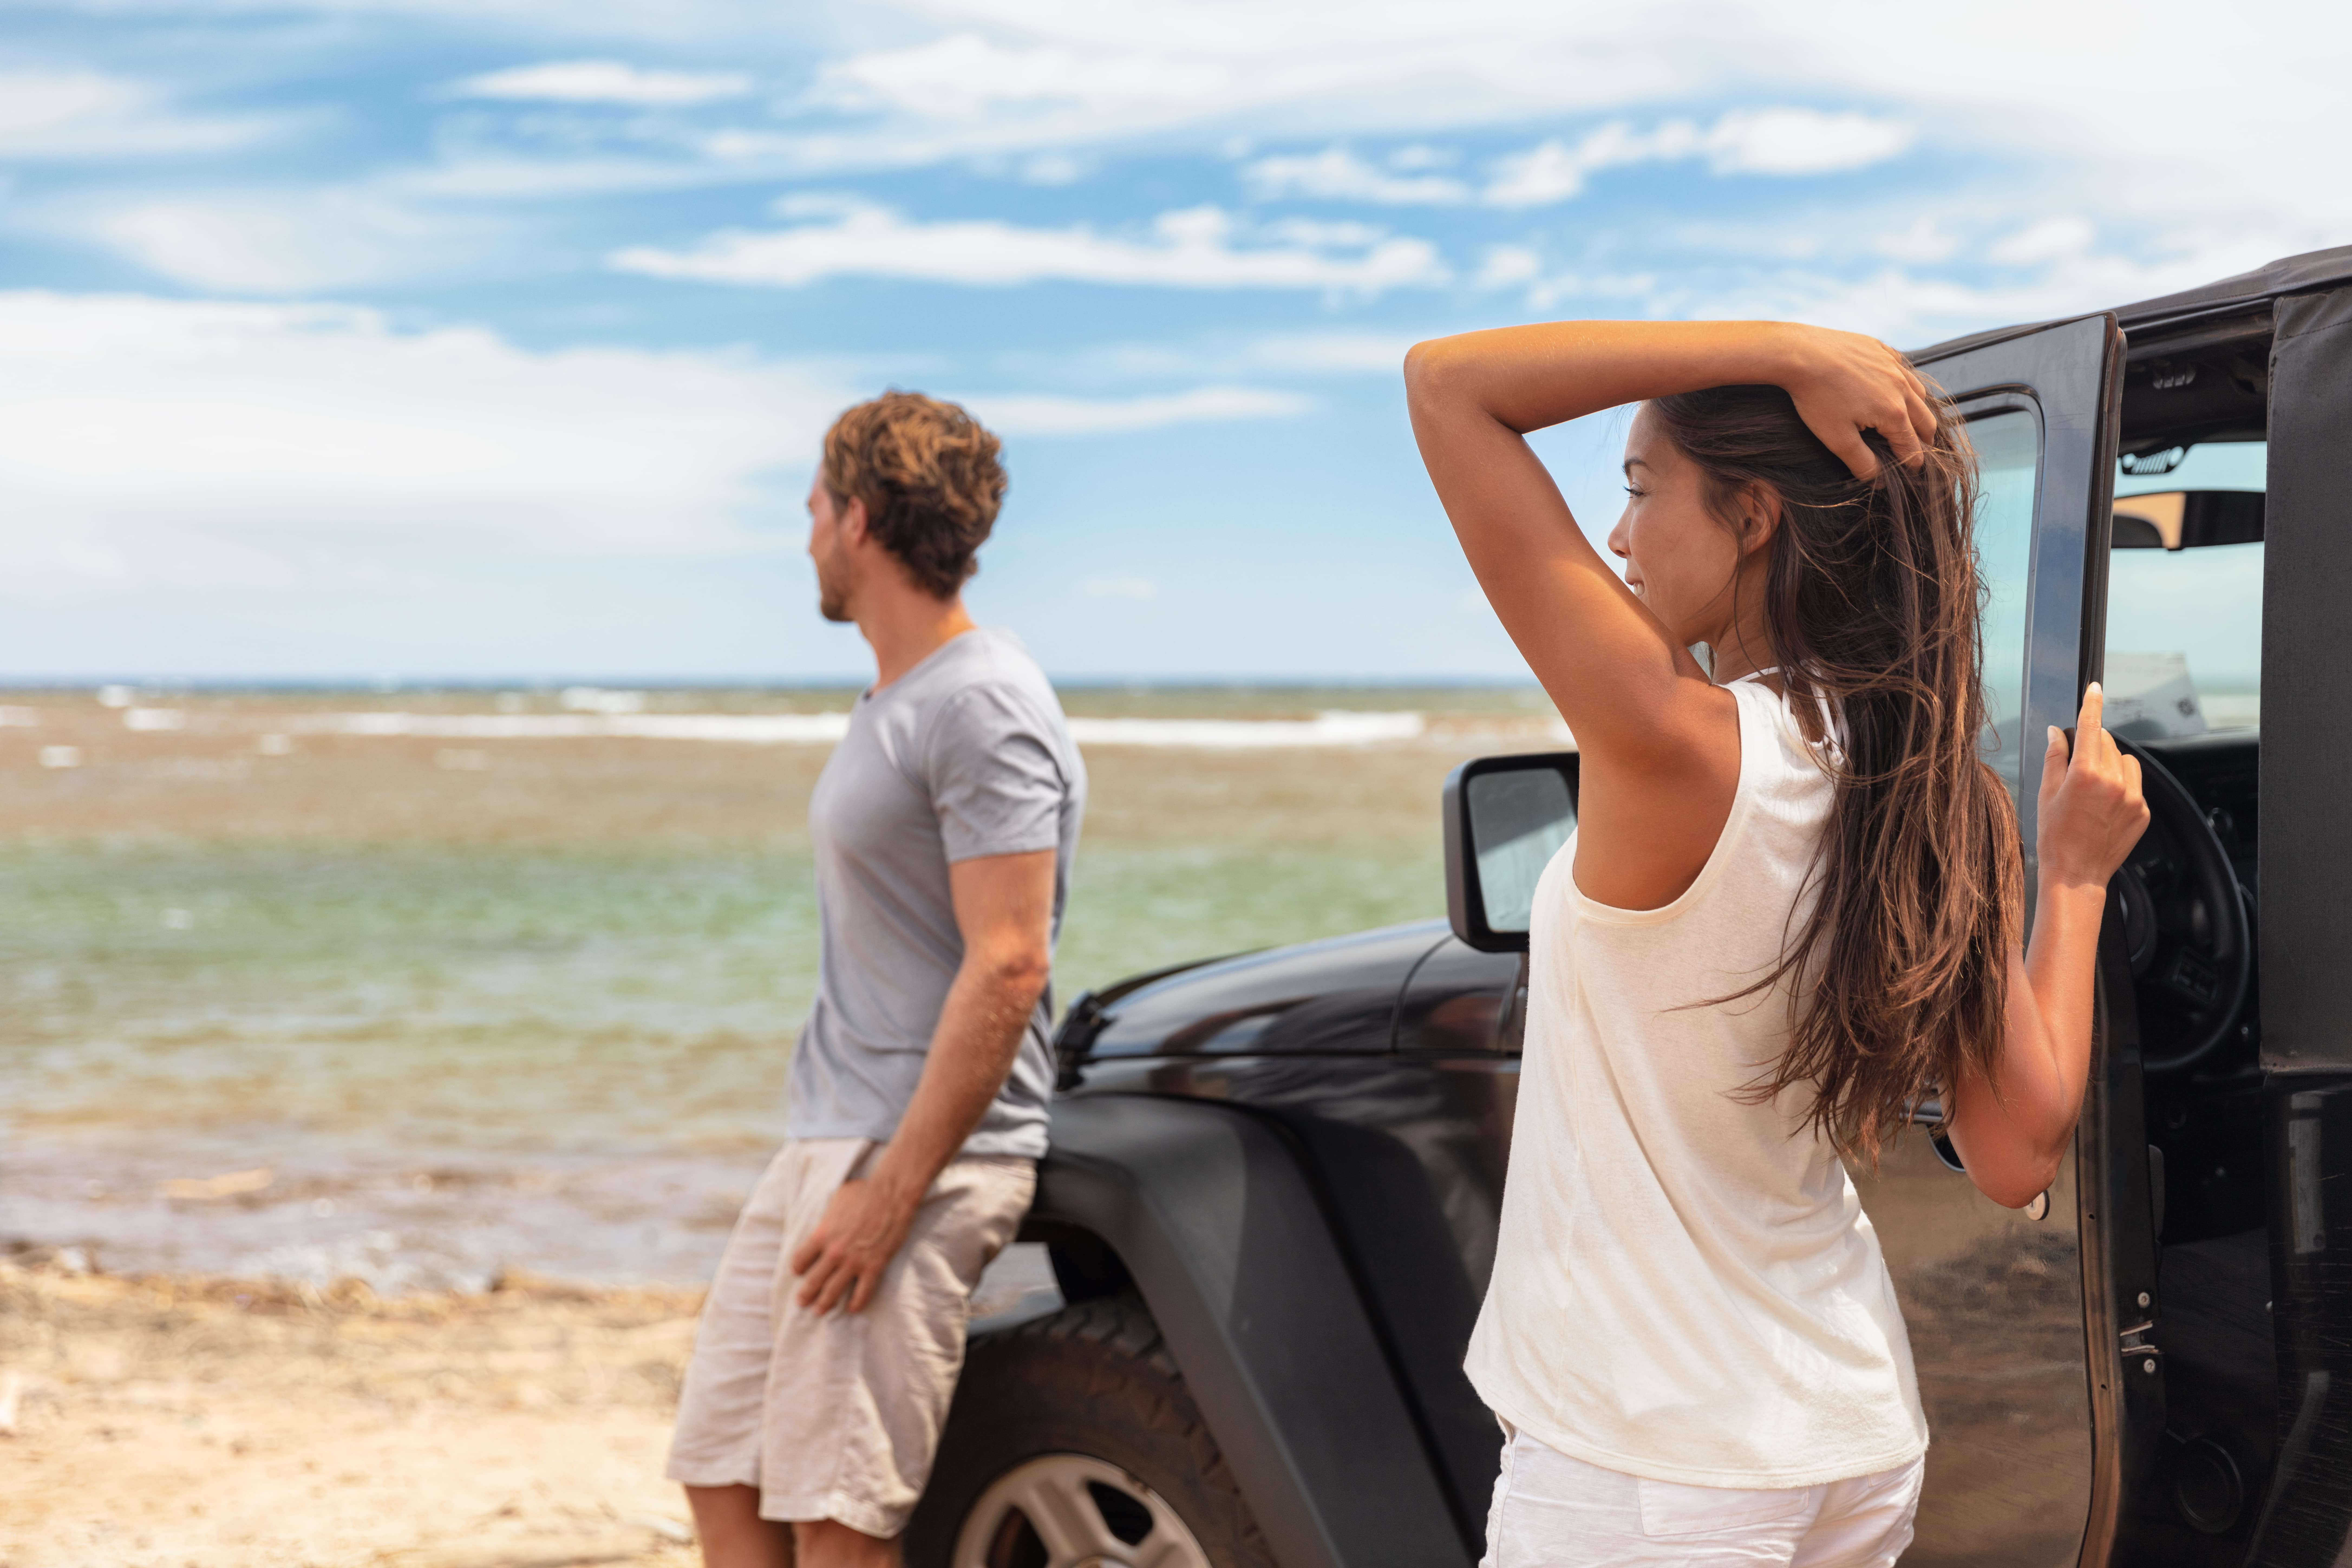 couple-on-road-trip-travel-holiday